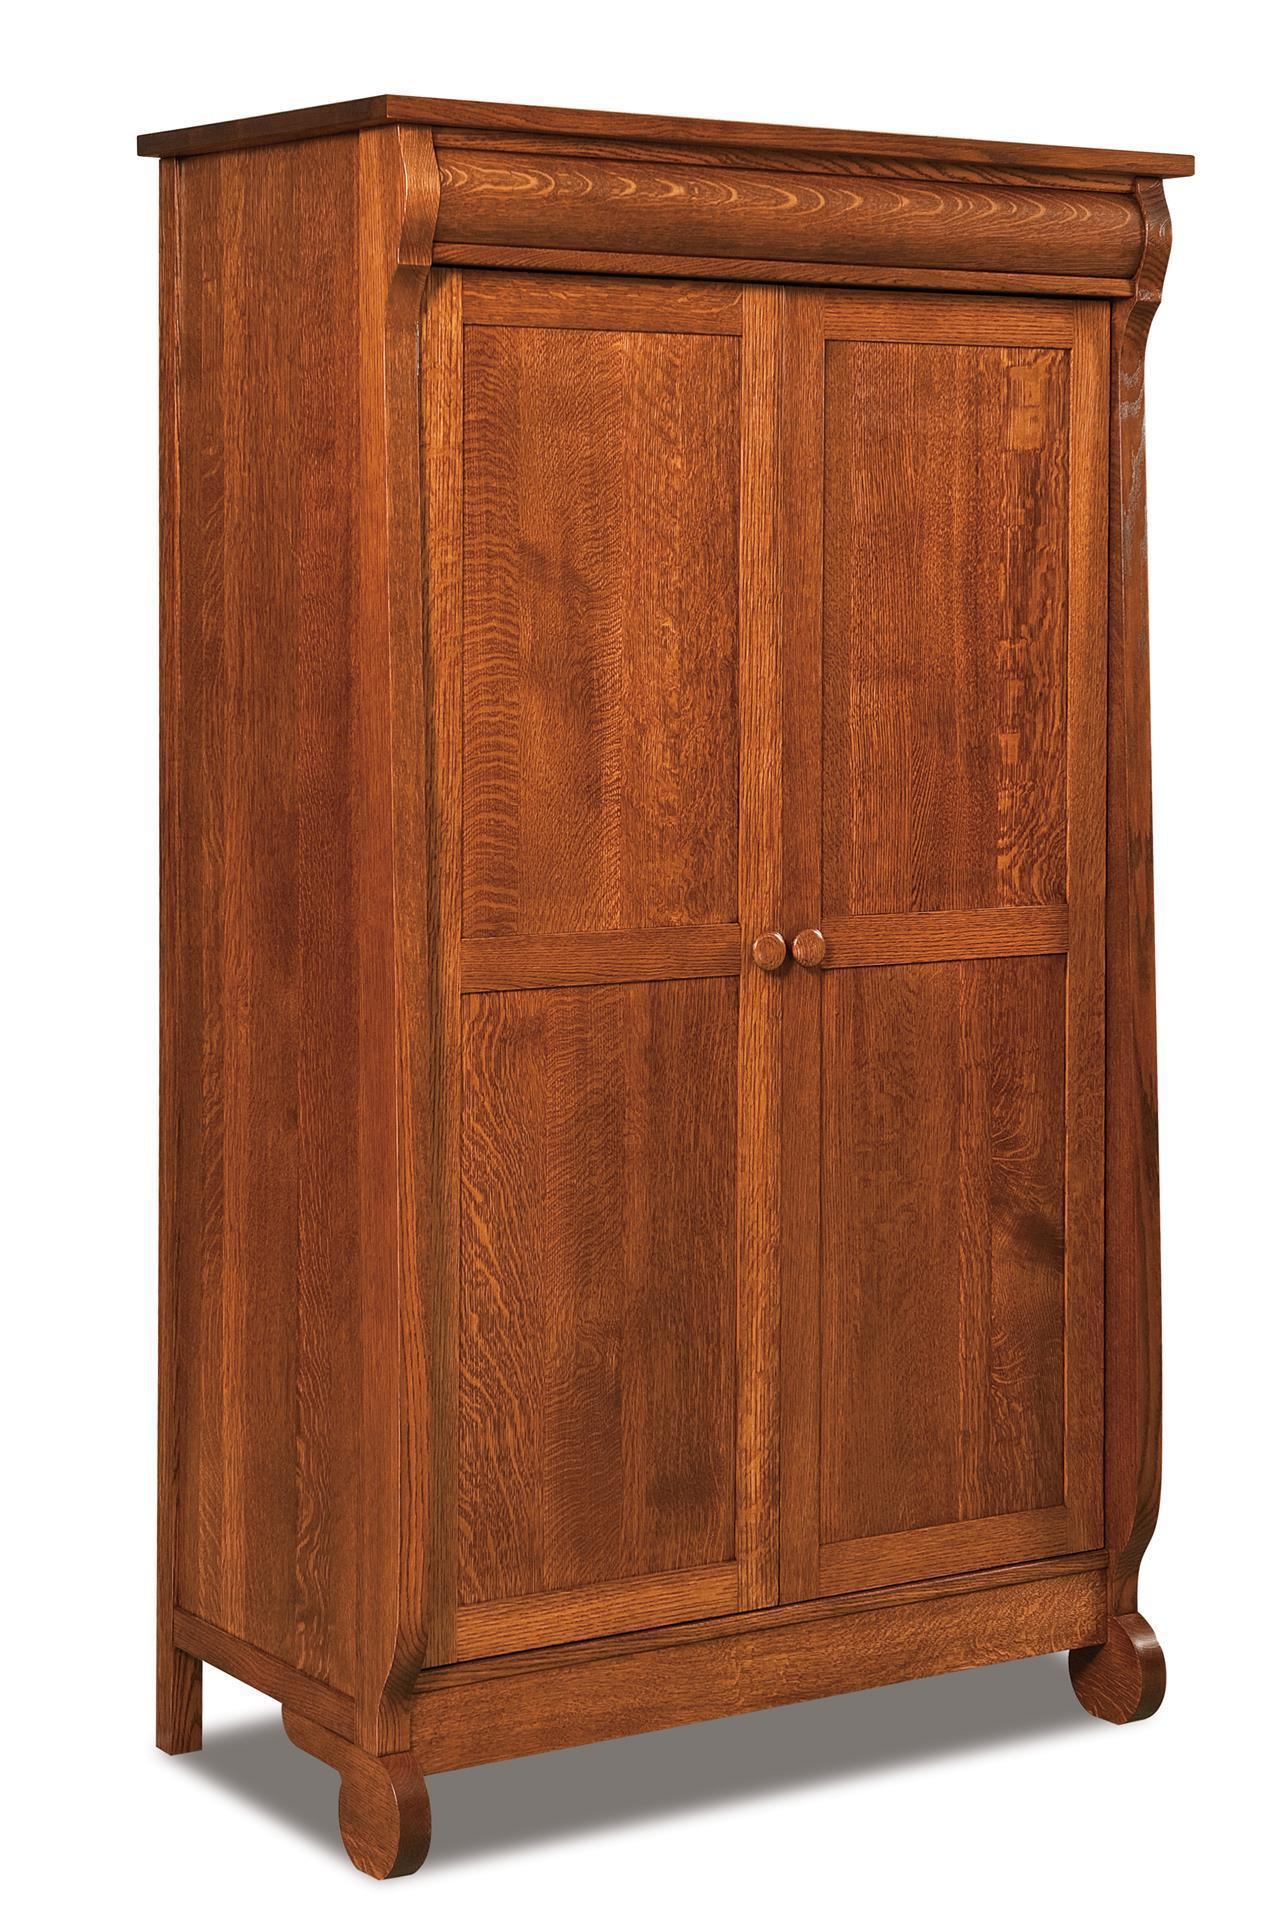 Amish Old Classic Sleigh Wardrobe Armoire From